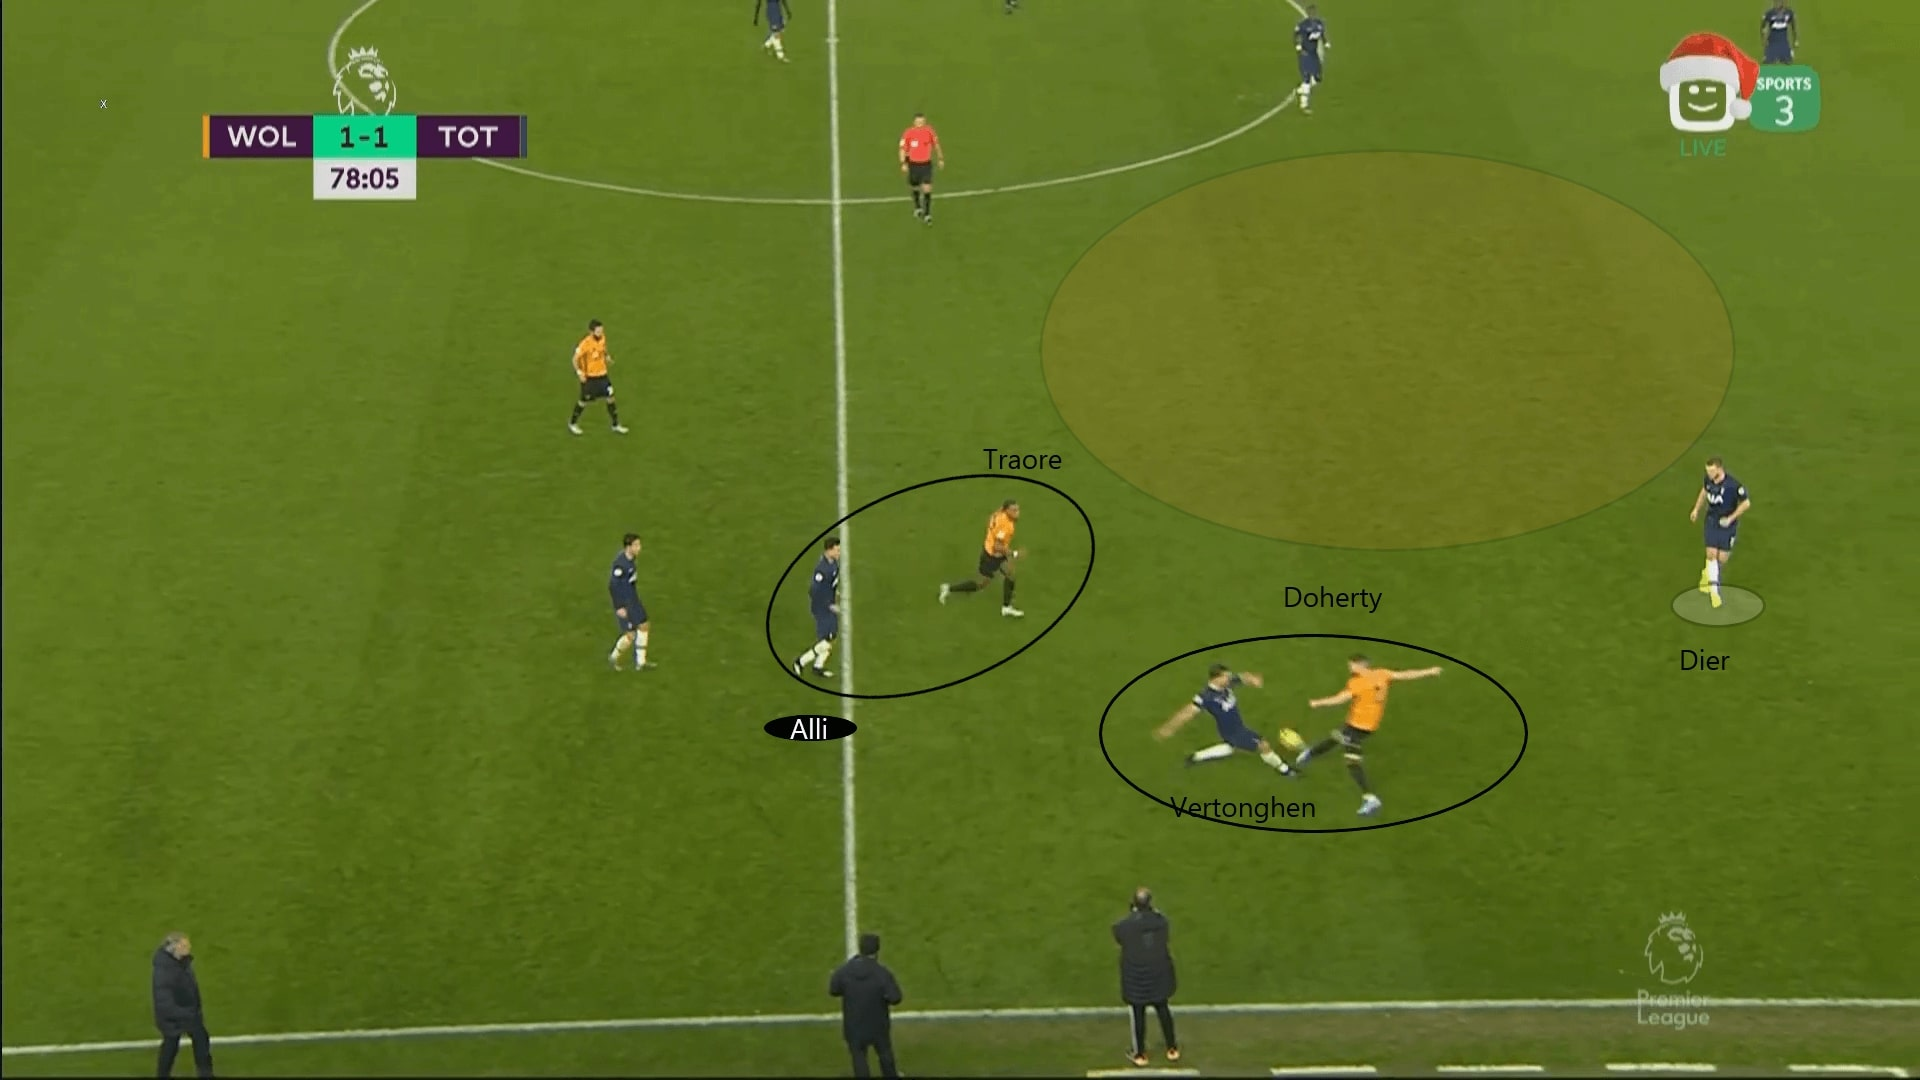 Premier League 2019/20: Wolves vs Tottenham - tactical analysis tactics